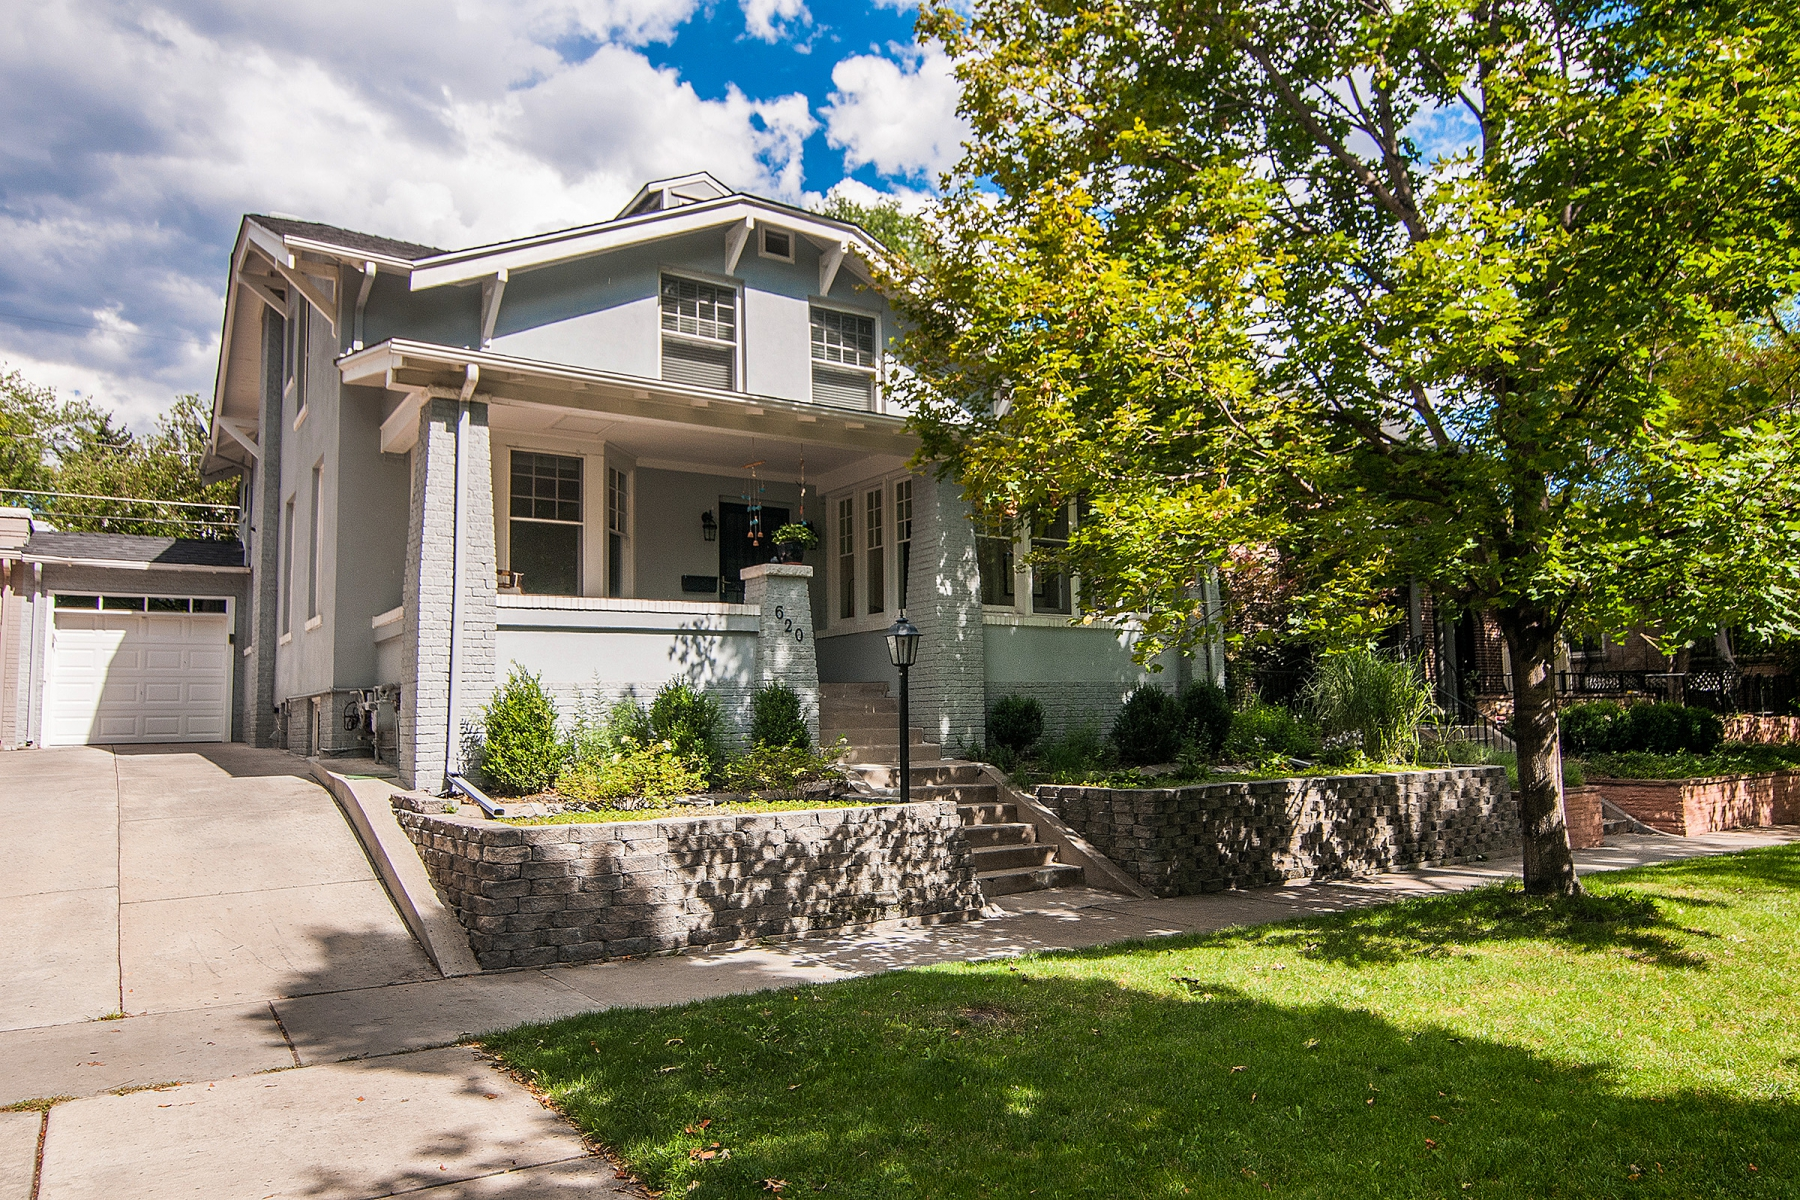 Single Family Home for Sale at Denver Country Club 620 N Williams Street Denver, Colorado 80218 United States